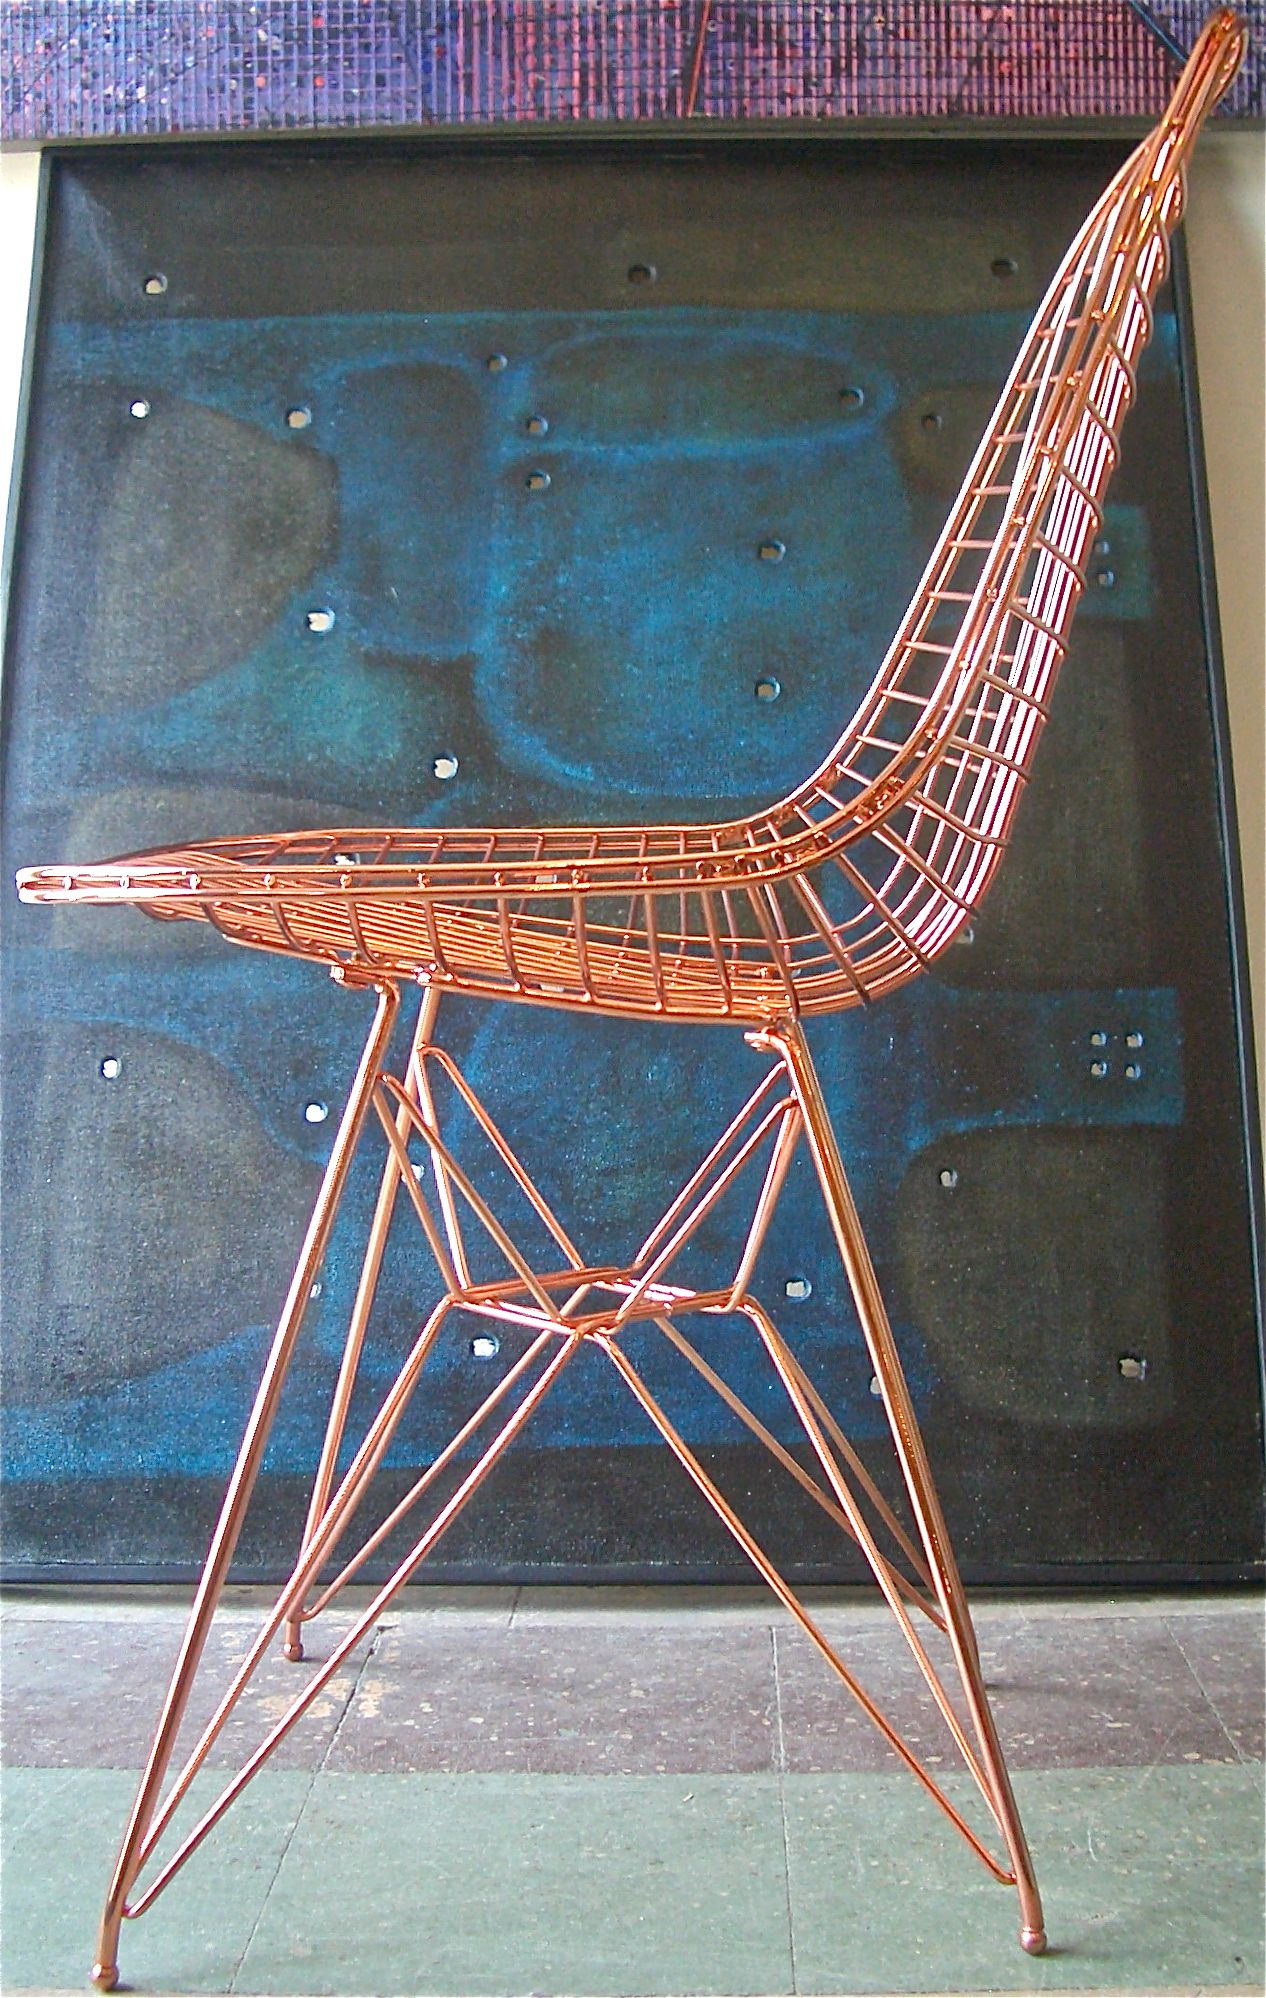 Eames wire chair dimensions - Eames Copper Pinned To Furniture Design Copper Furniturewire Chairplastic